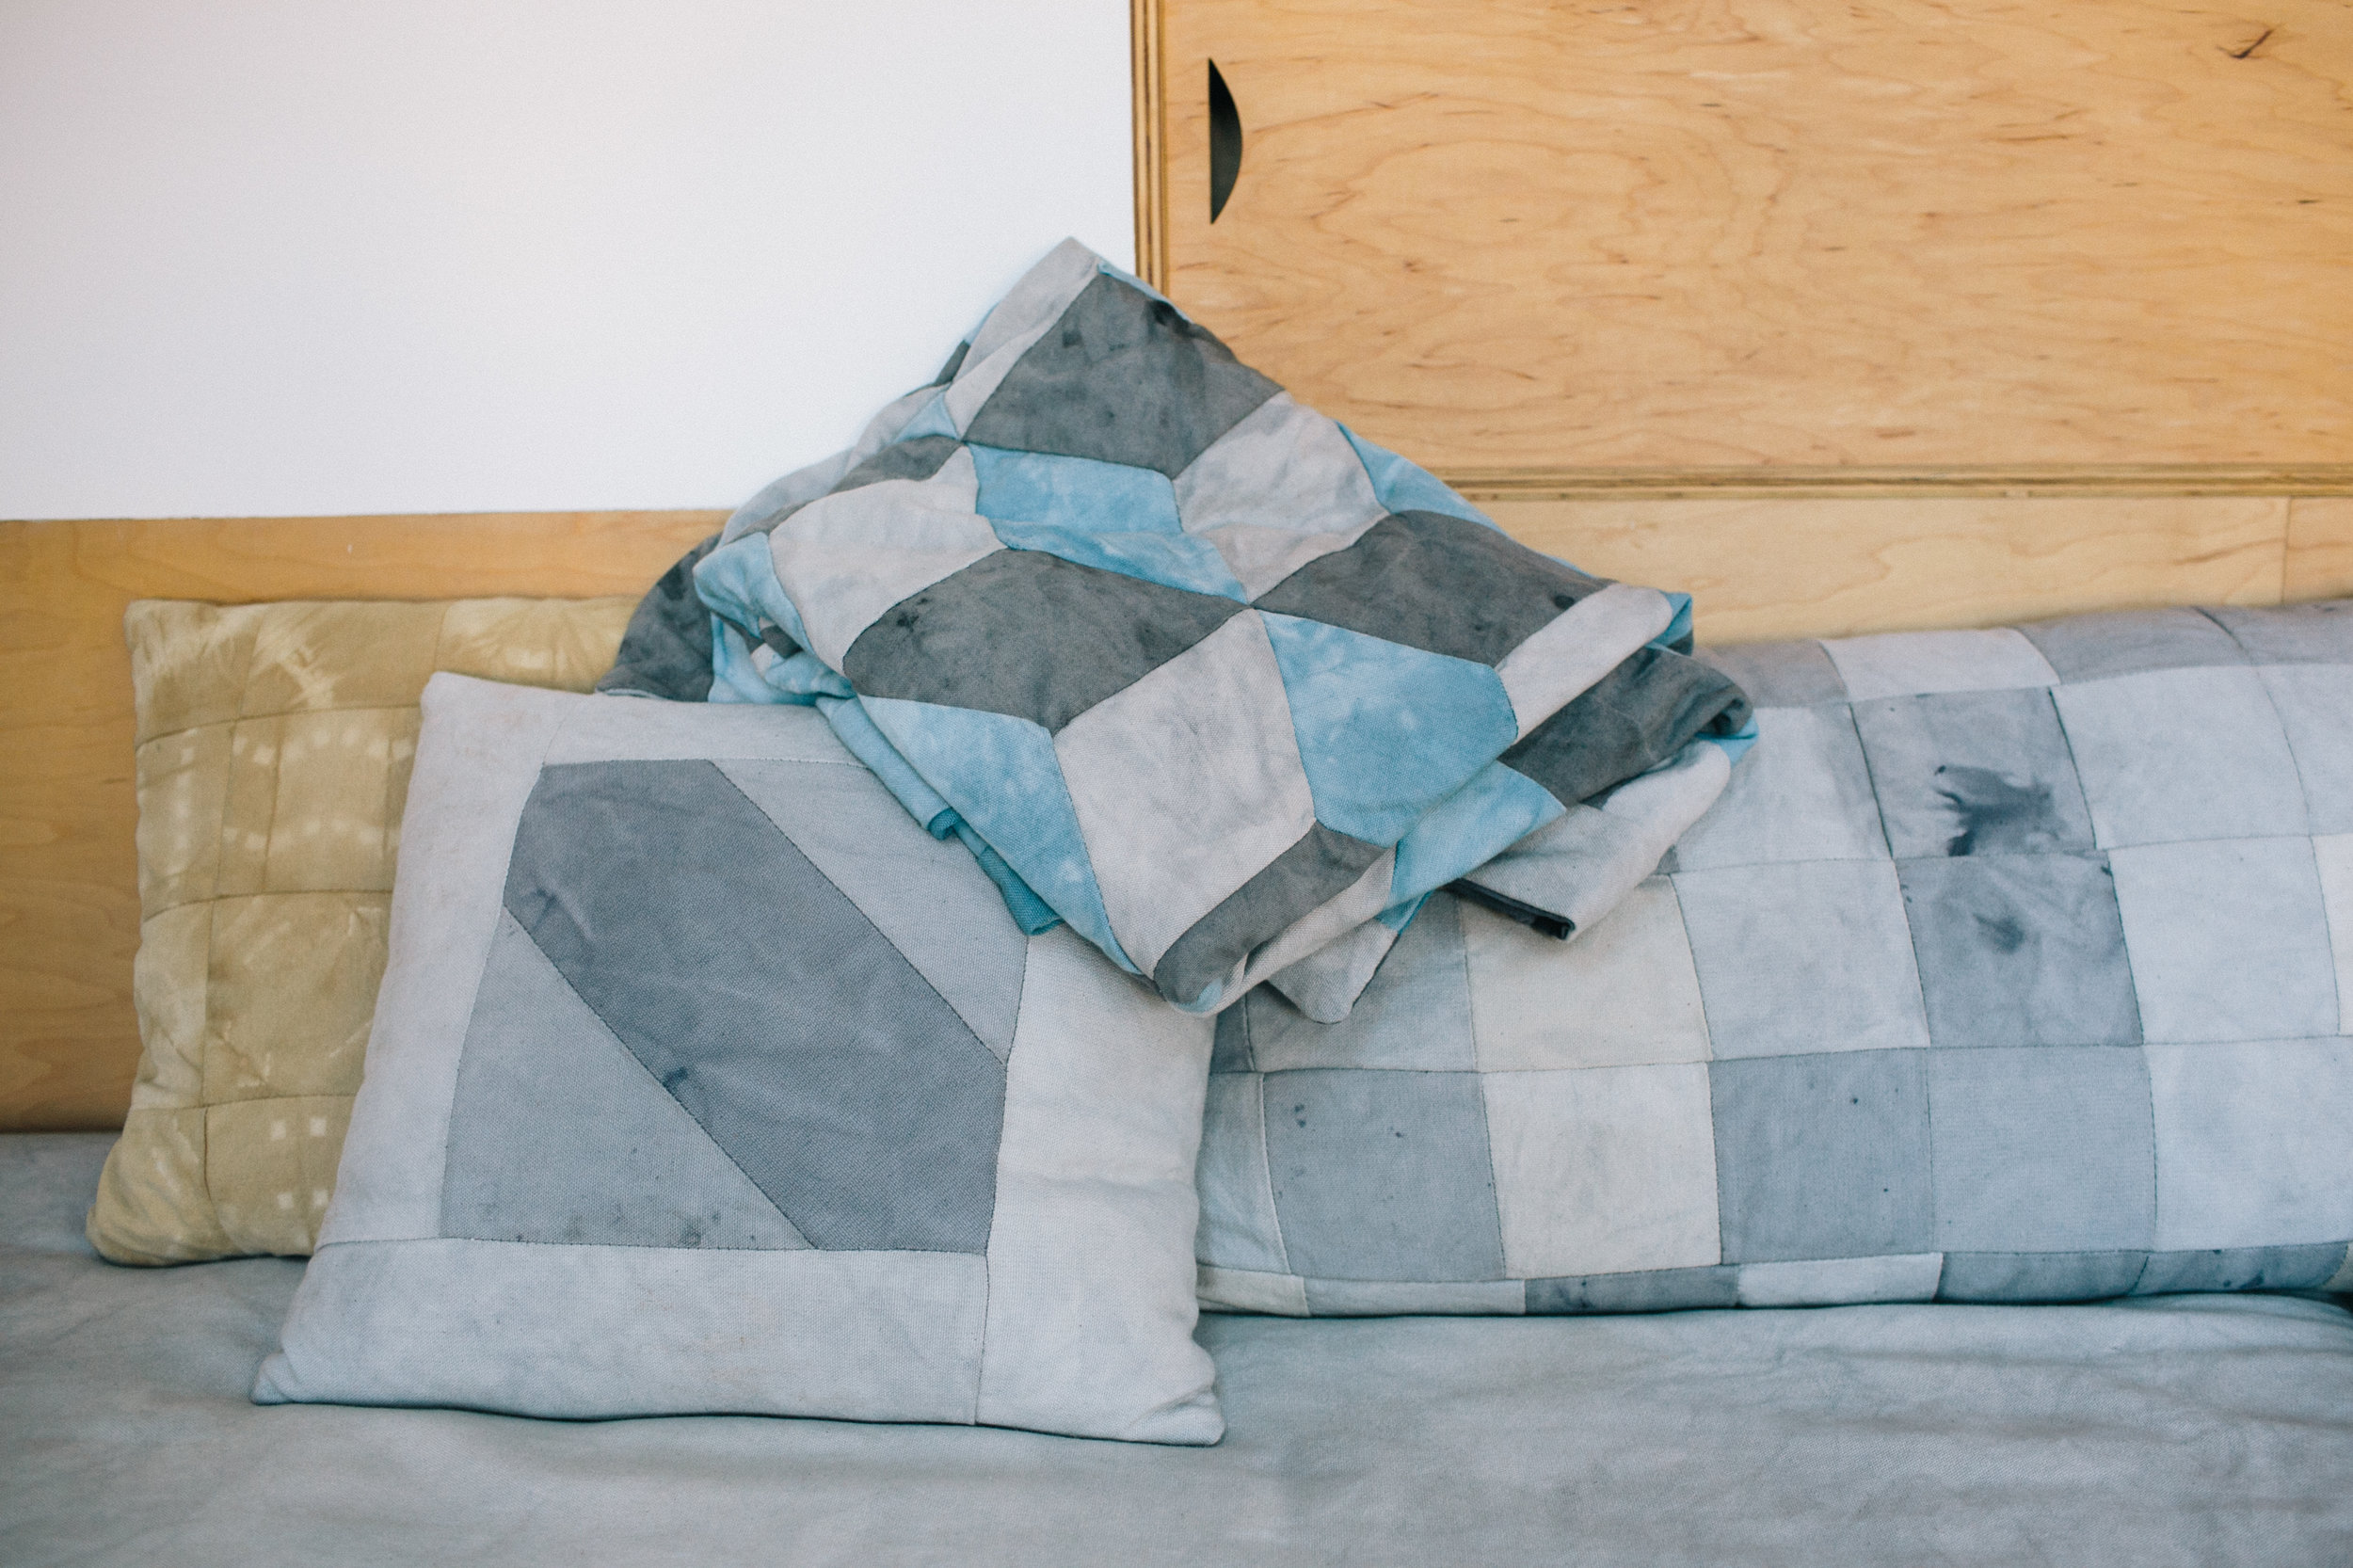 Pillow (back left)- Pine Bark Dye on Cotton Canvas Pillow (center and back right) - Oak Galls & Iron Dye on Canvas Tumbling Blocks Quilt - (on top of pillows) - Oak Galls & Iron and Indigo Dye on Canvas